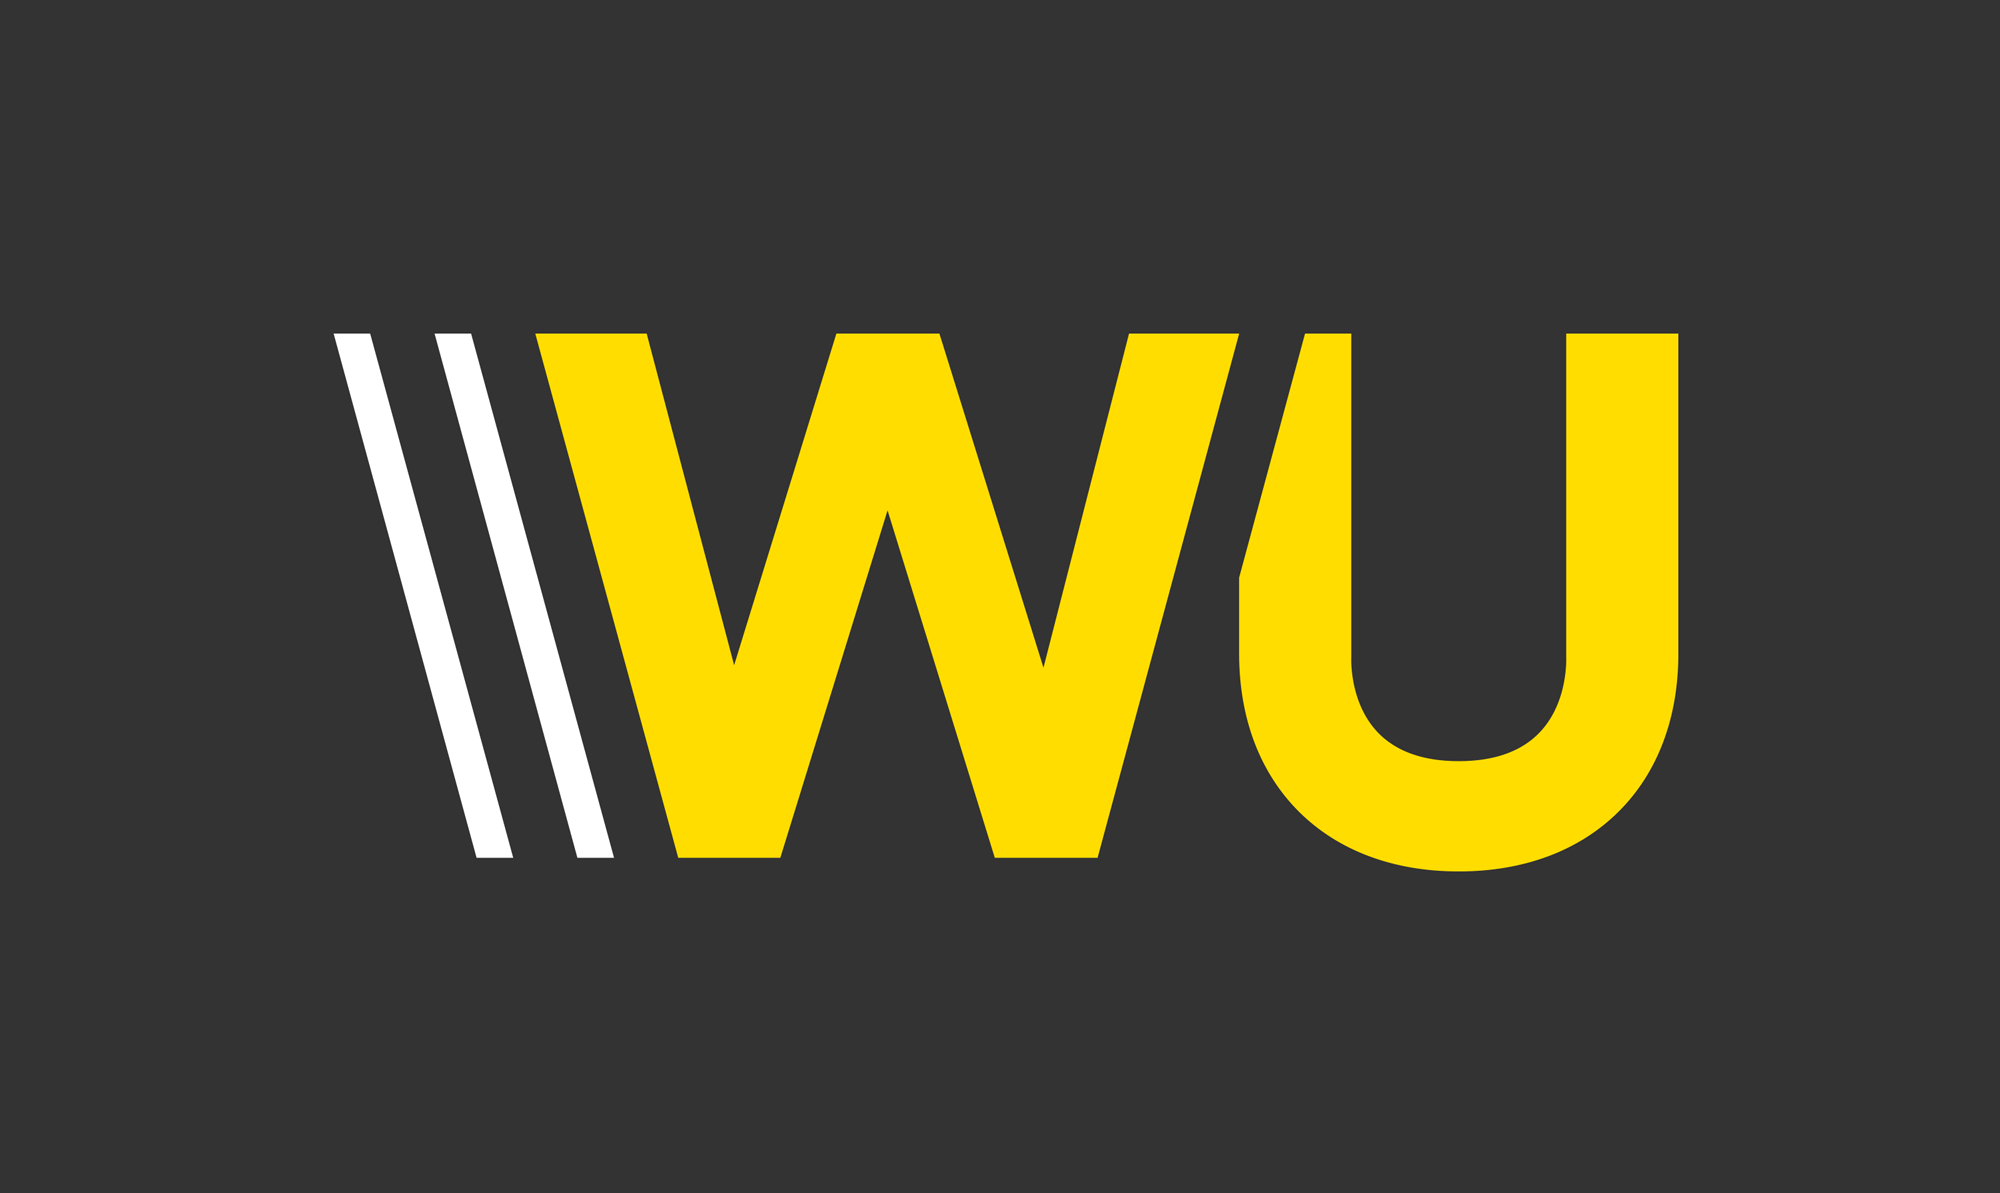 Brand New New Logo For Western Union Typography Branding Graphic Design Firms Identity Logo